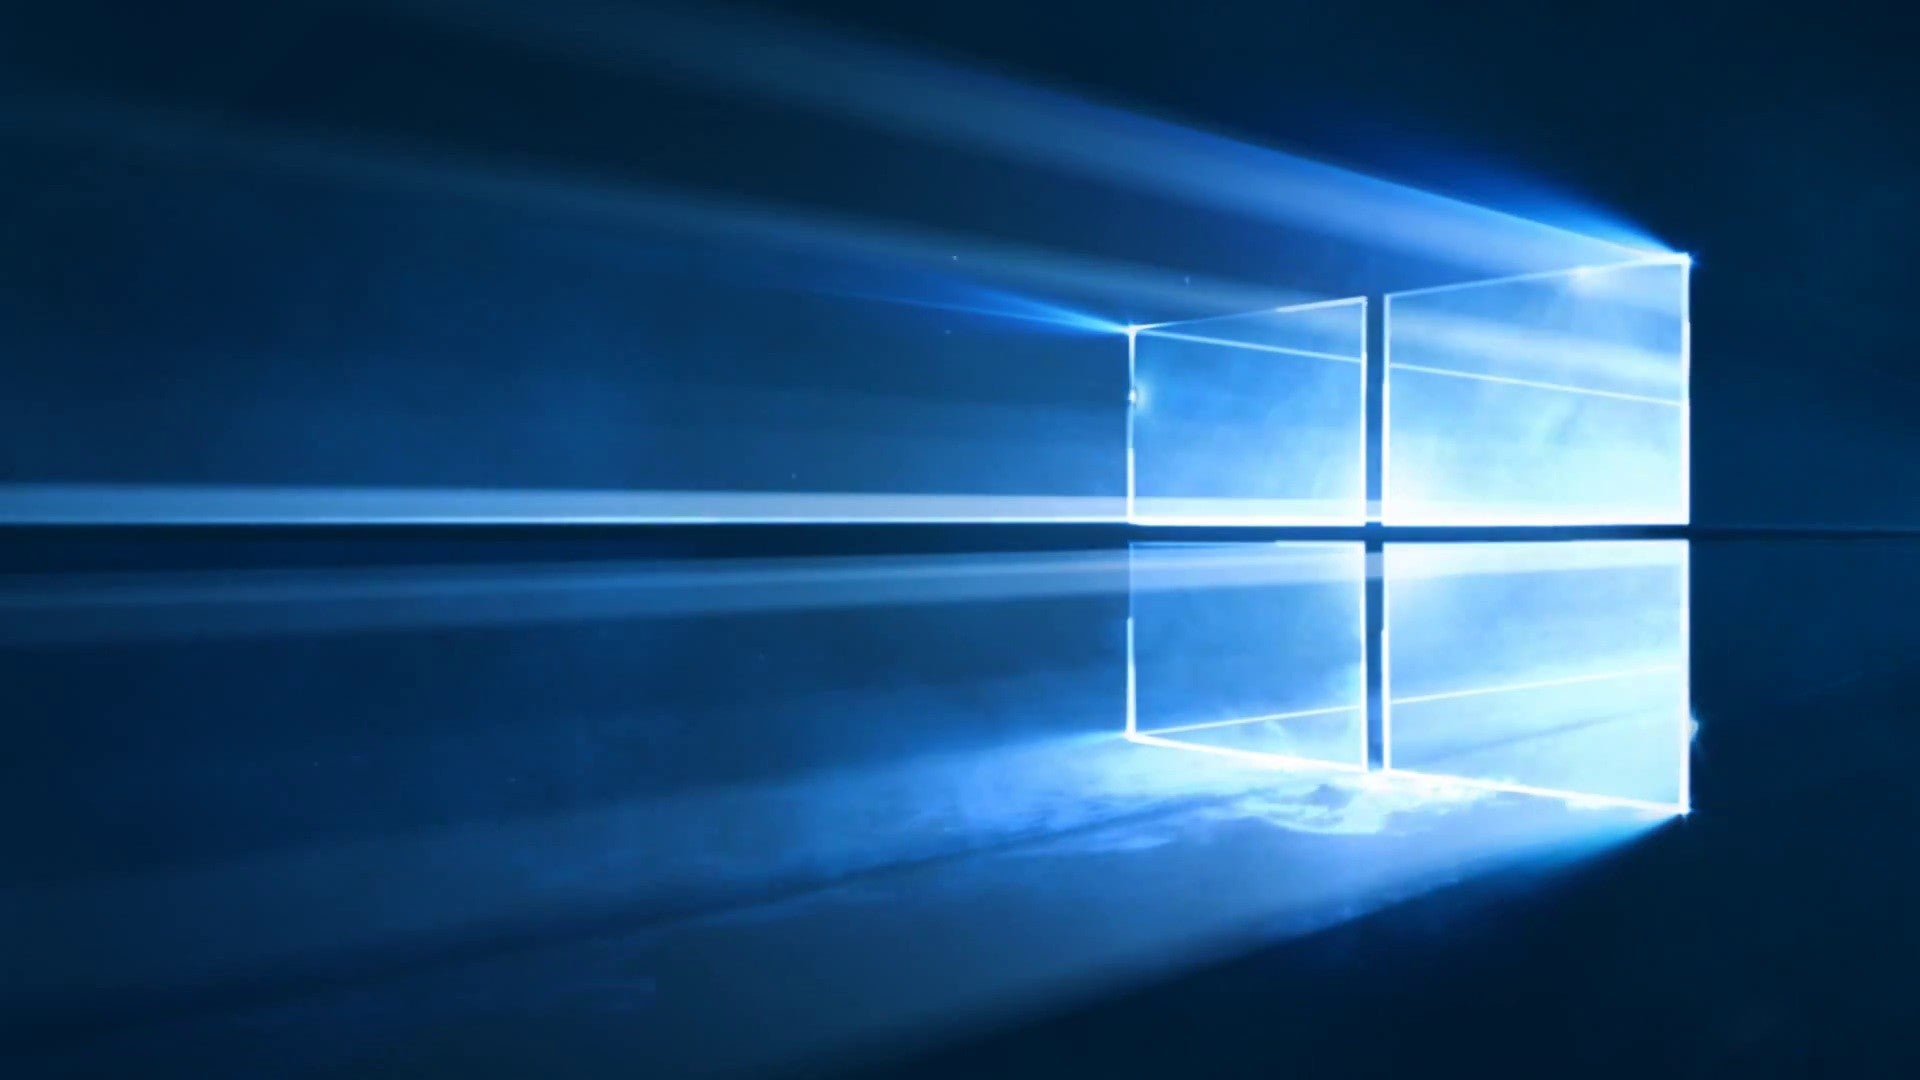 Microsoft Is Forcing Patches On Windows 10 Systems, Even When Auto Updates Are Disabled